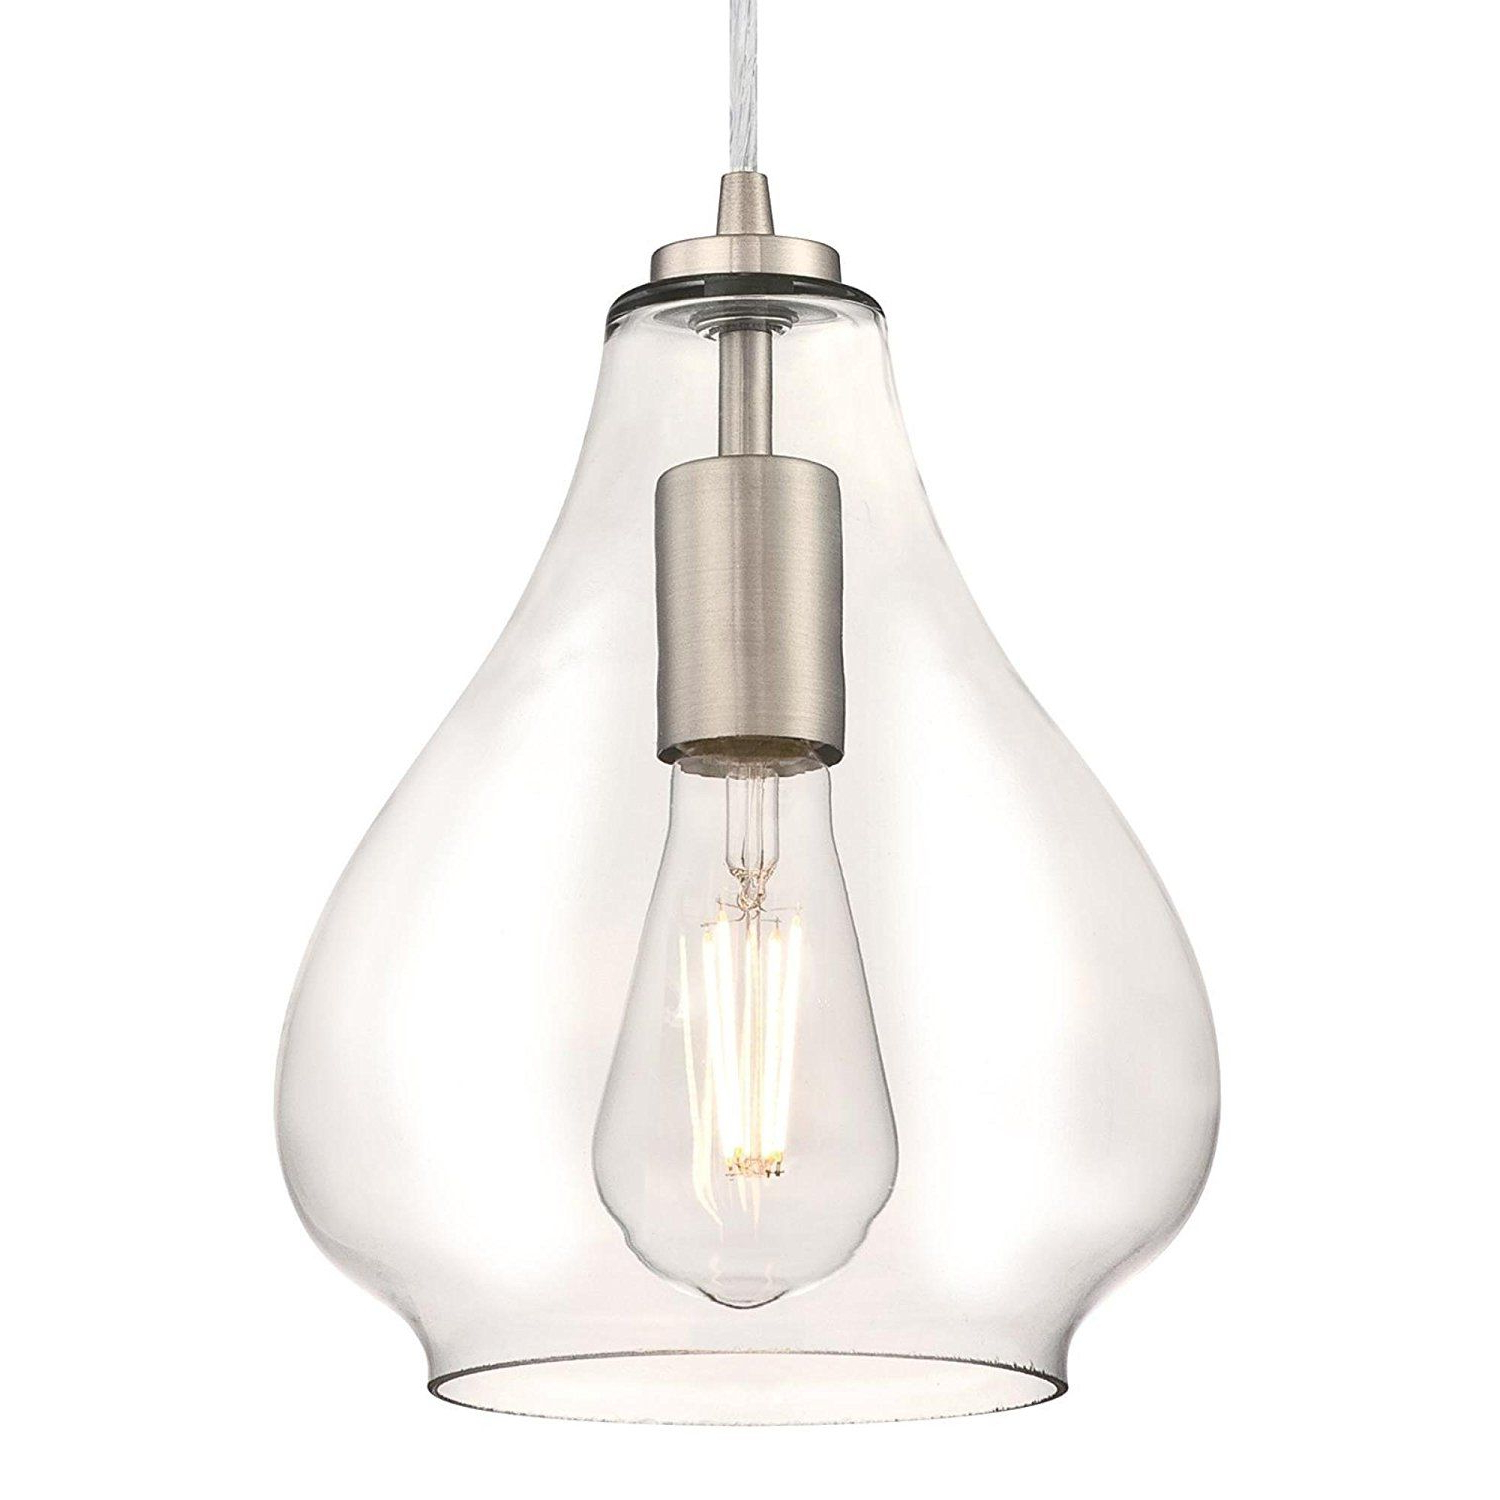 2019 Moyer 1-Light Single Cylinder Pendants throughout Westinghouse 6102600 Industrial One-Light Adjustable Mini